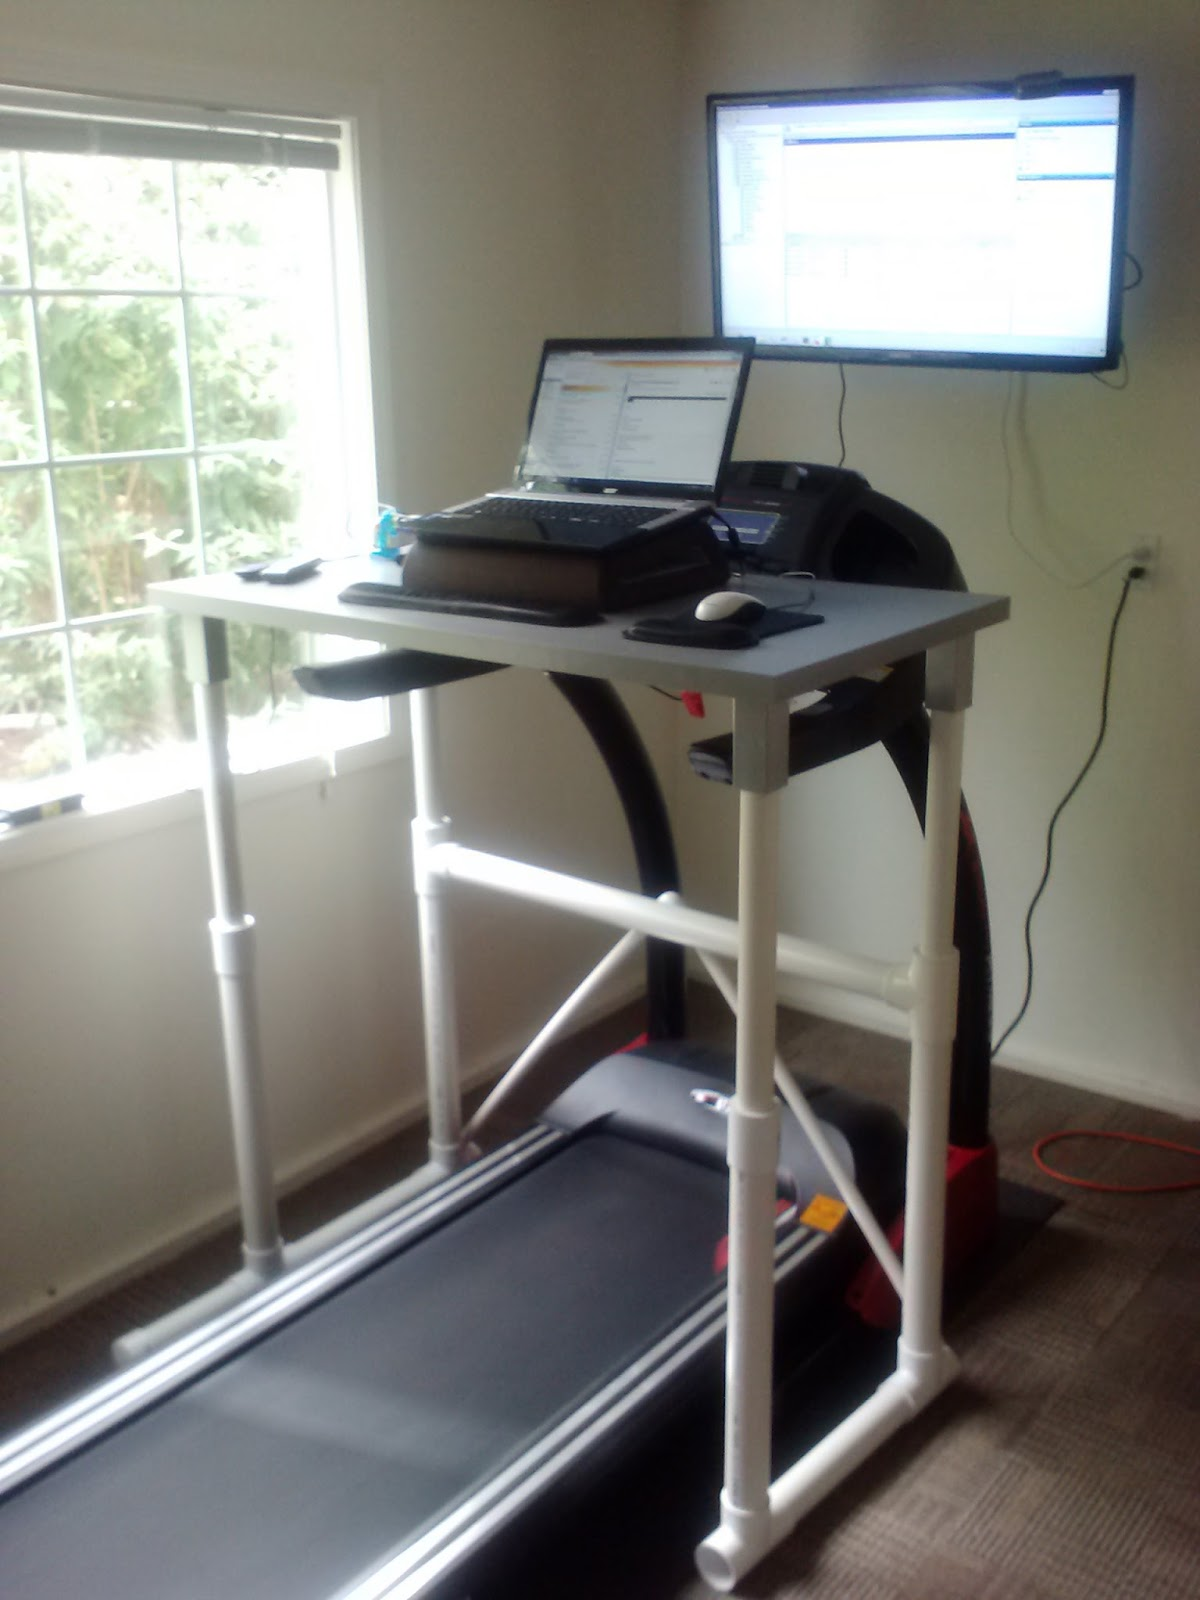 Gallery For > Diy Treadmill Desk Ikea